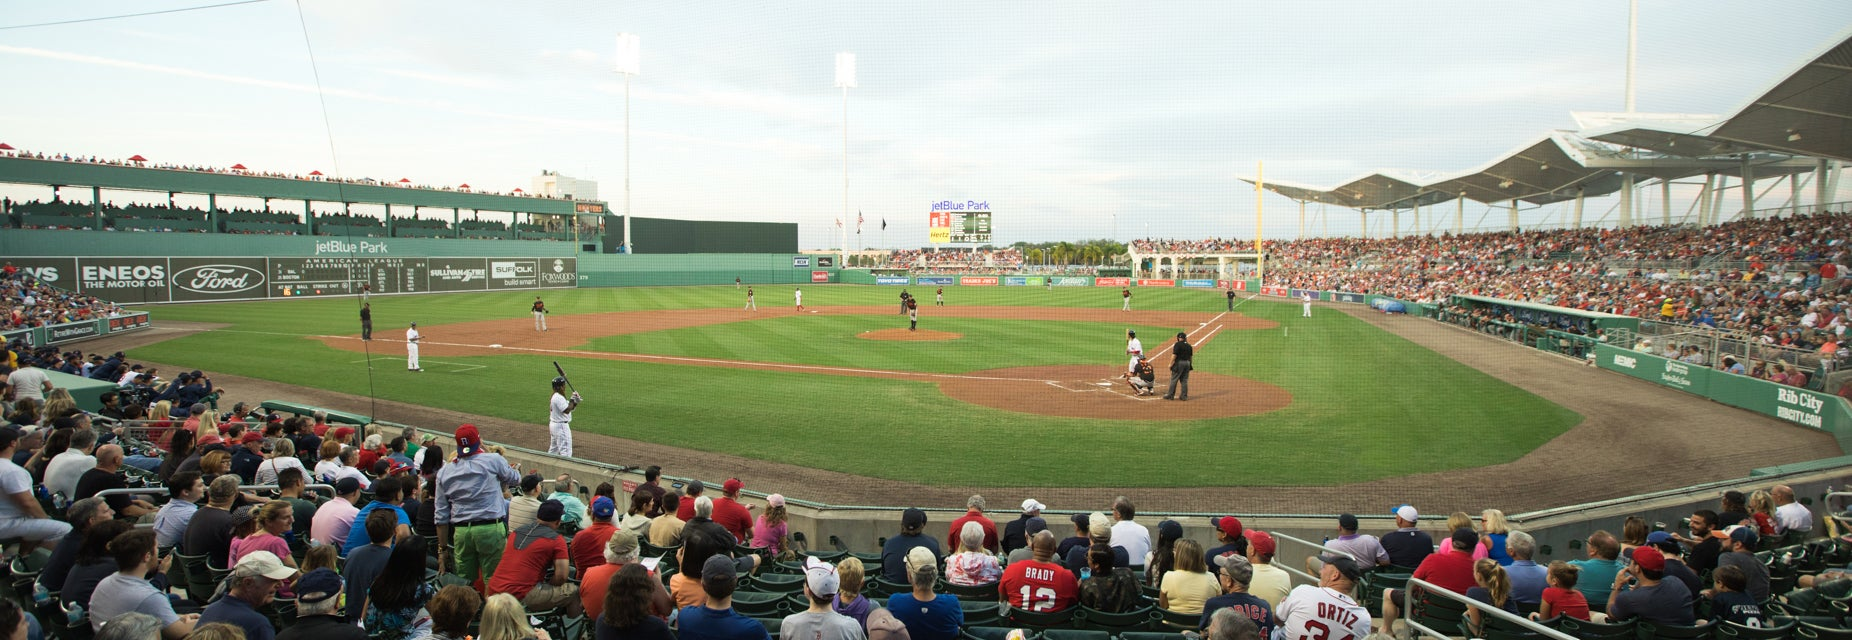 Red Sox - Spring Training Tickets